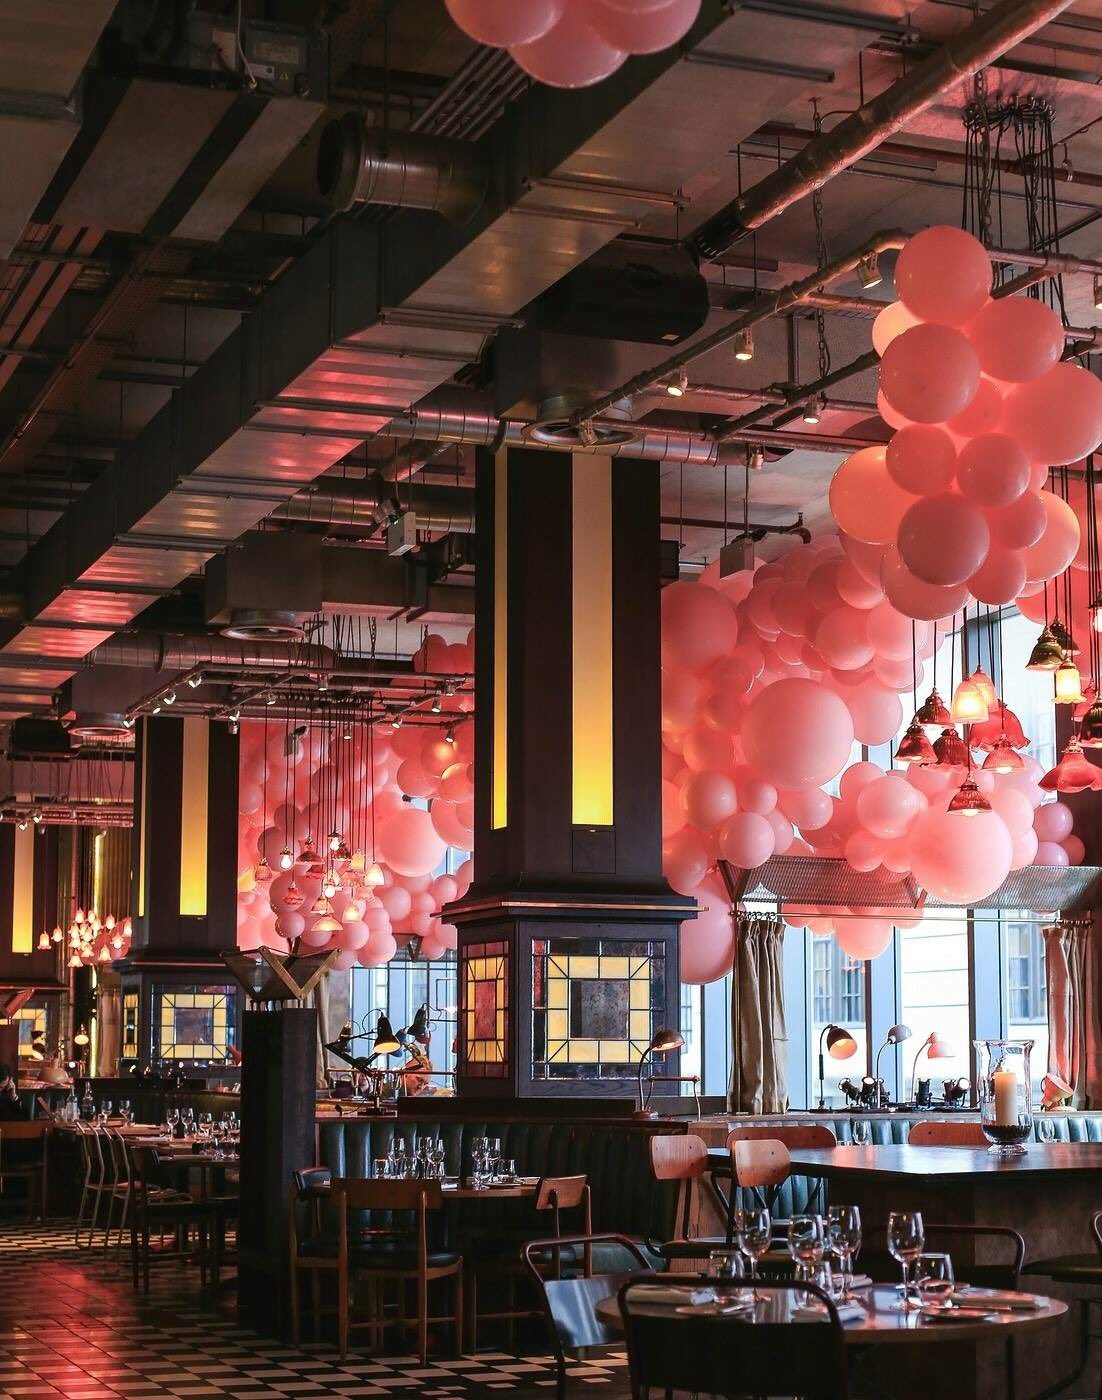 RT @Michaeljfitch: Looking forward to adding a touch of Magic on Valentines evening @breadstkitchen https://t.co/YsBnan1FlL